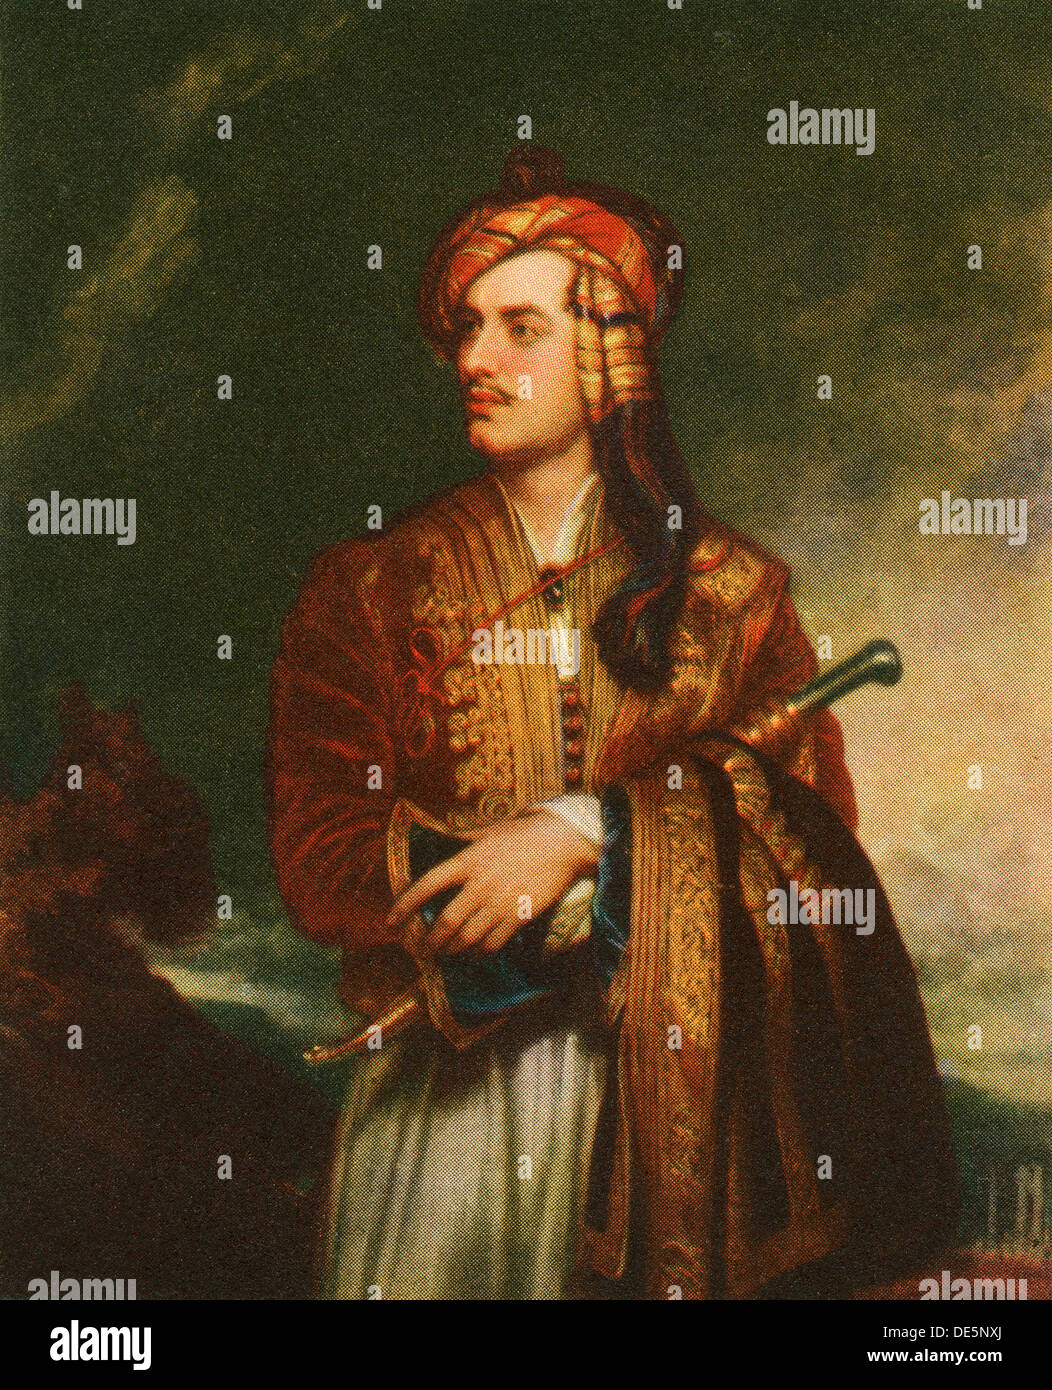 Lord Byron in Albanian dress. George Gordon Byron, 6th Baron Byron, 1788 – 1824, aka Lord Byron. English nobleman, poet, peer, politician, and leading figure in the Romantic movement. - Stock Image